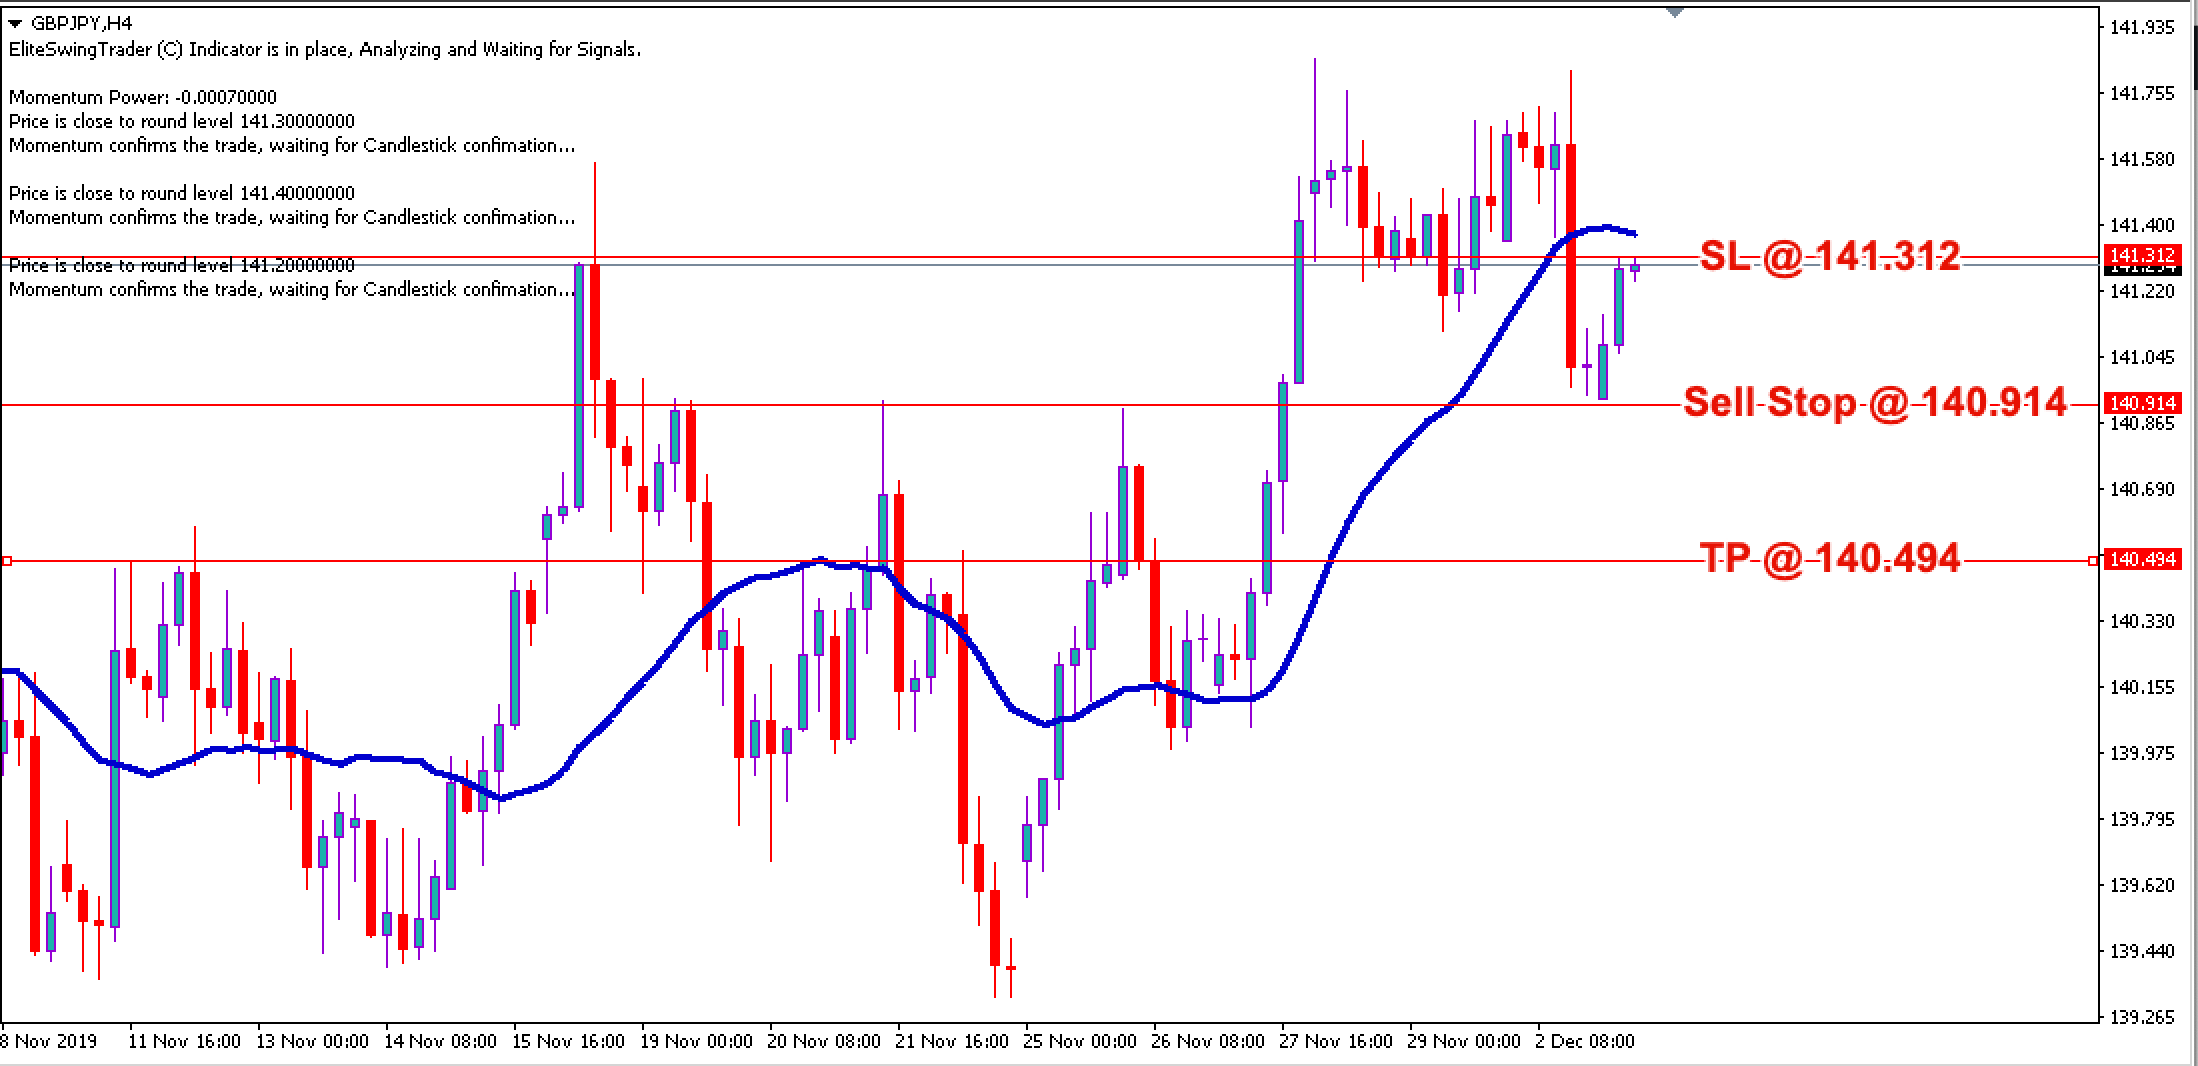 Free Forex Trade Signals GBPJPY – 3rd Dec 2019